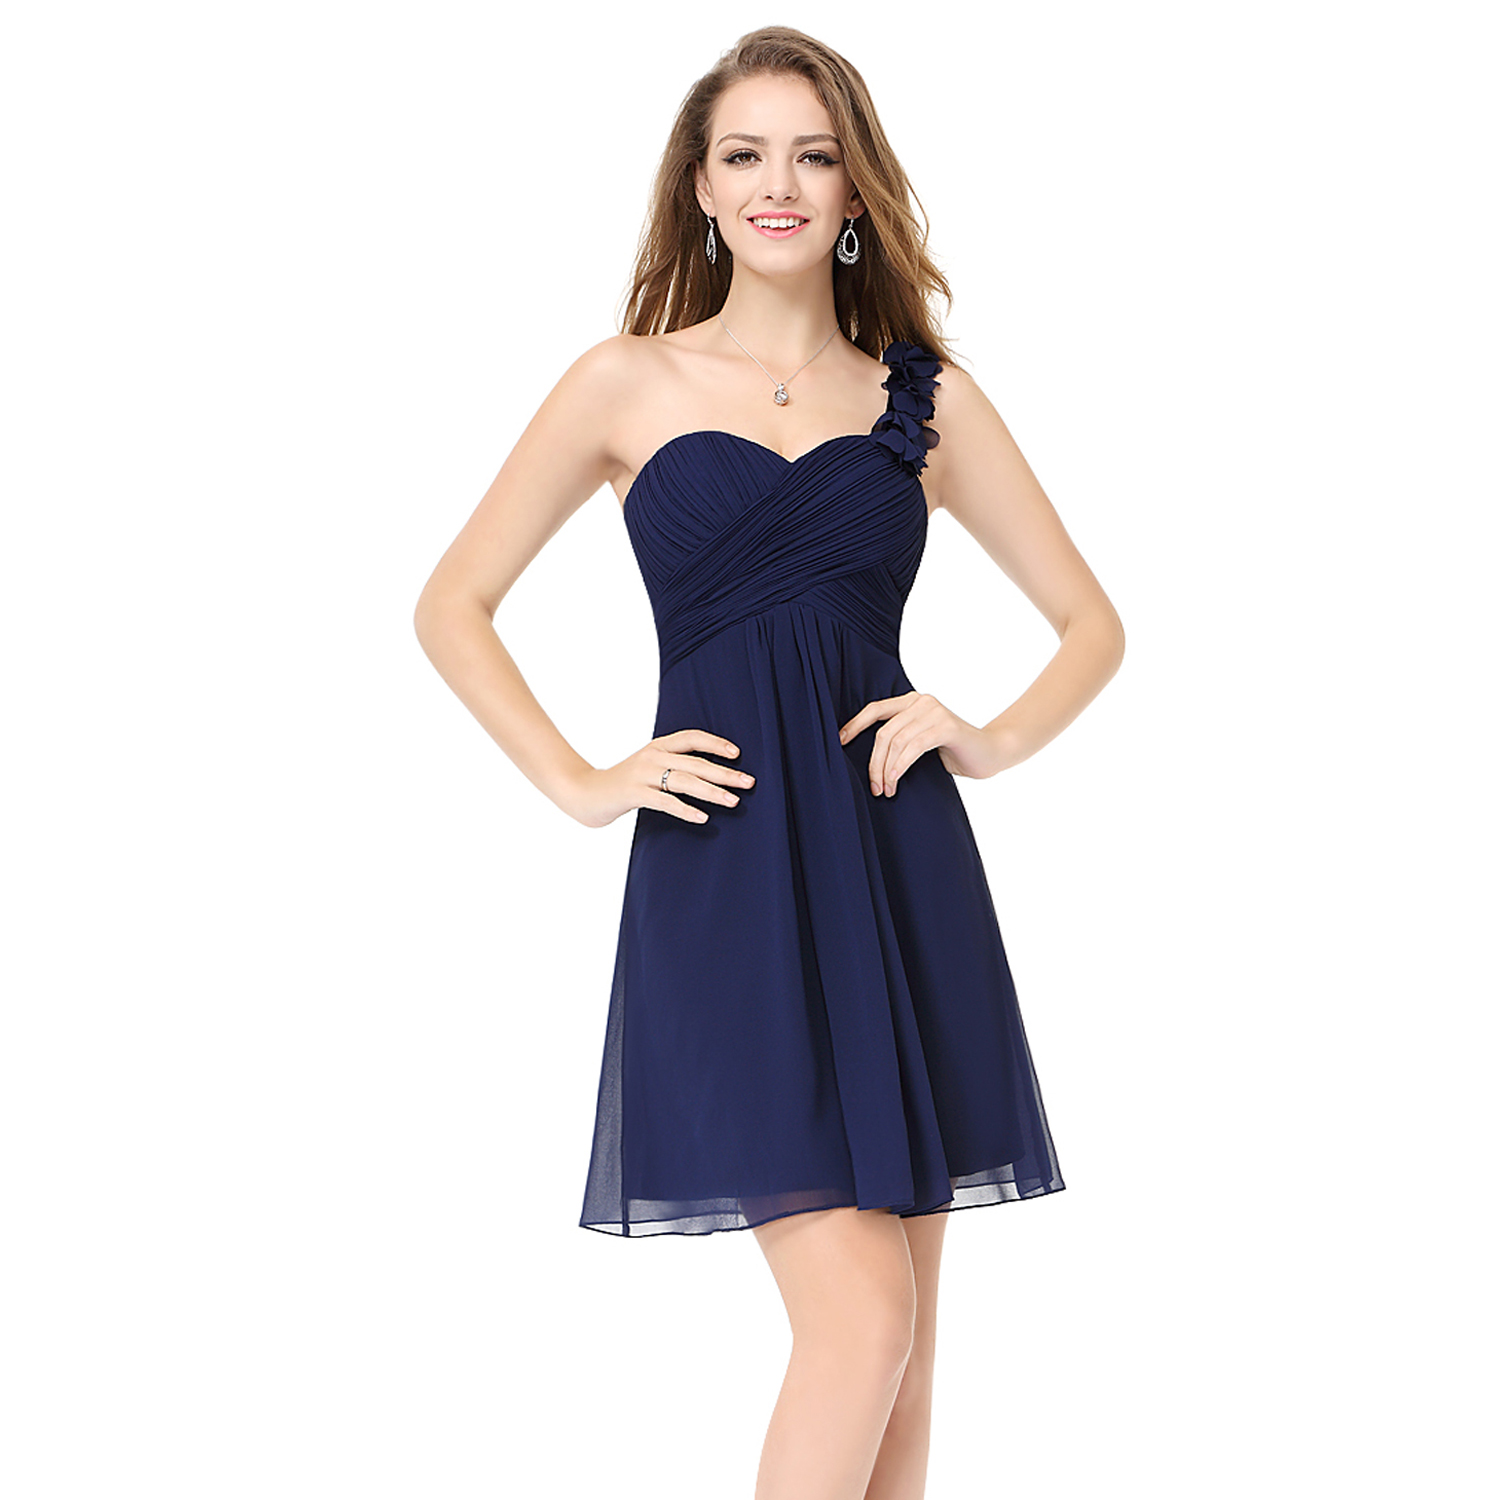 UK Chiffon Cute Short Homecoming Party Dresses Bridesmaid ...